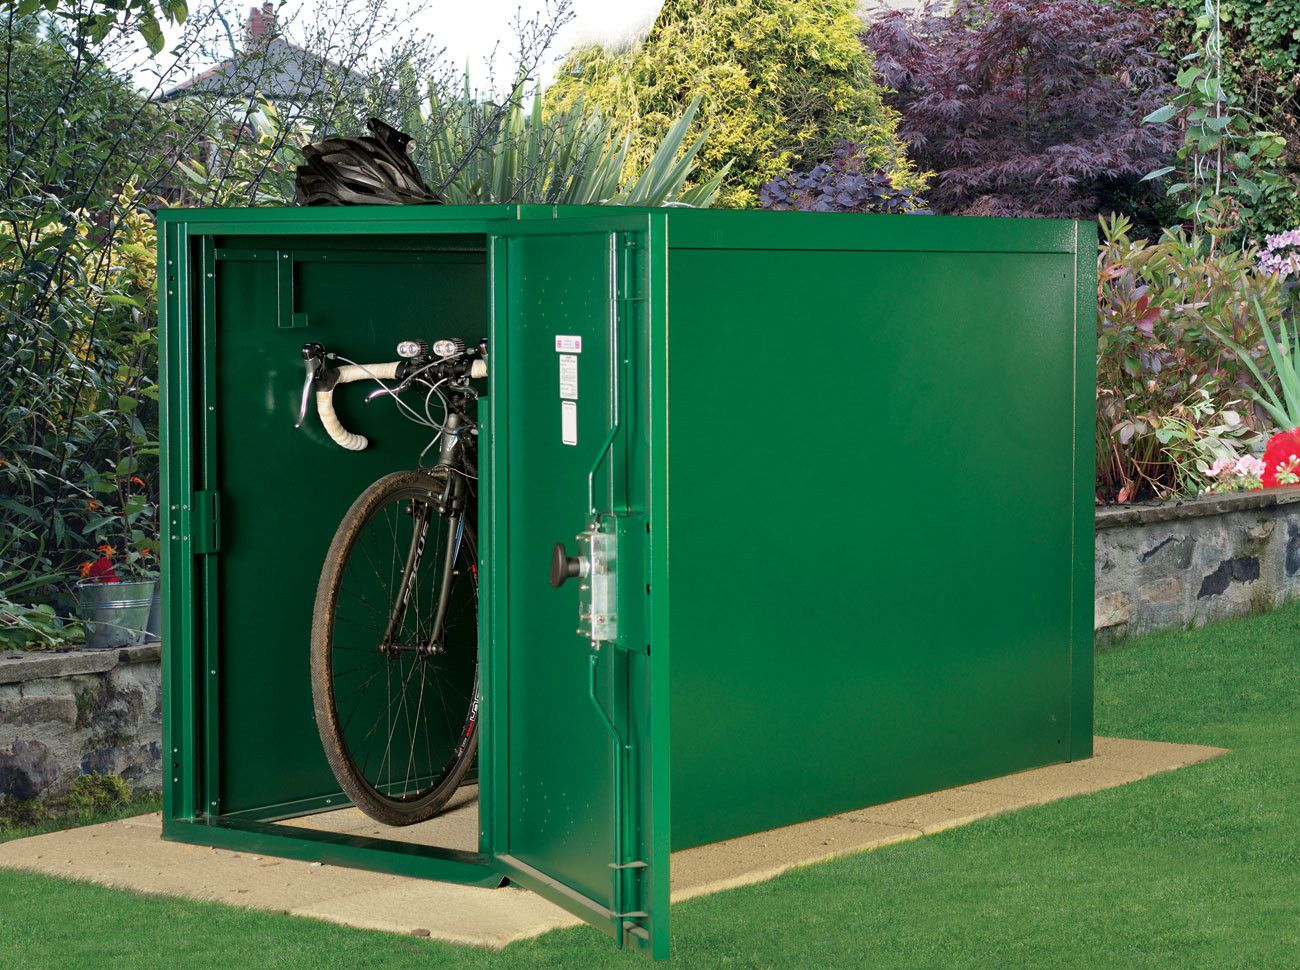 Double Ended Metal Bike Shelter With Images Secure Bike